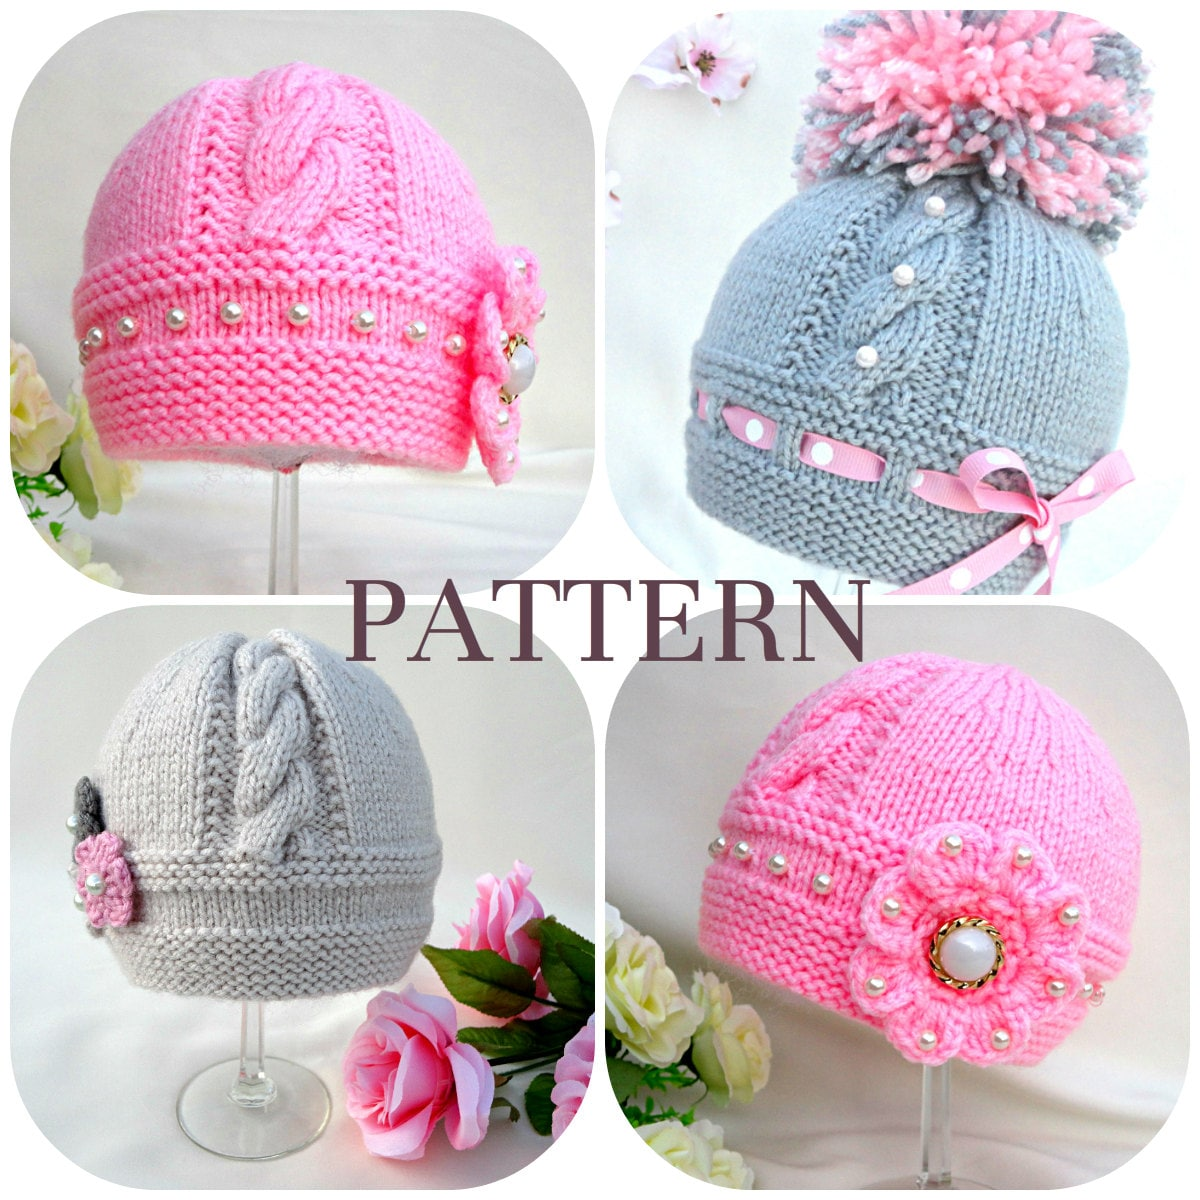 Knitting P A T T E R N Knitting Baby Hat Baby Patterns Knitted Baby ...